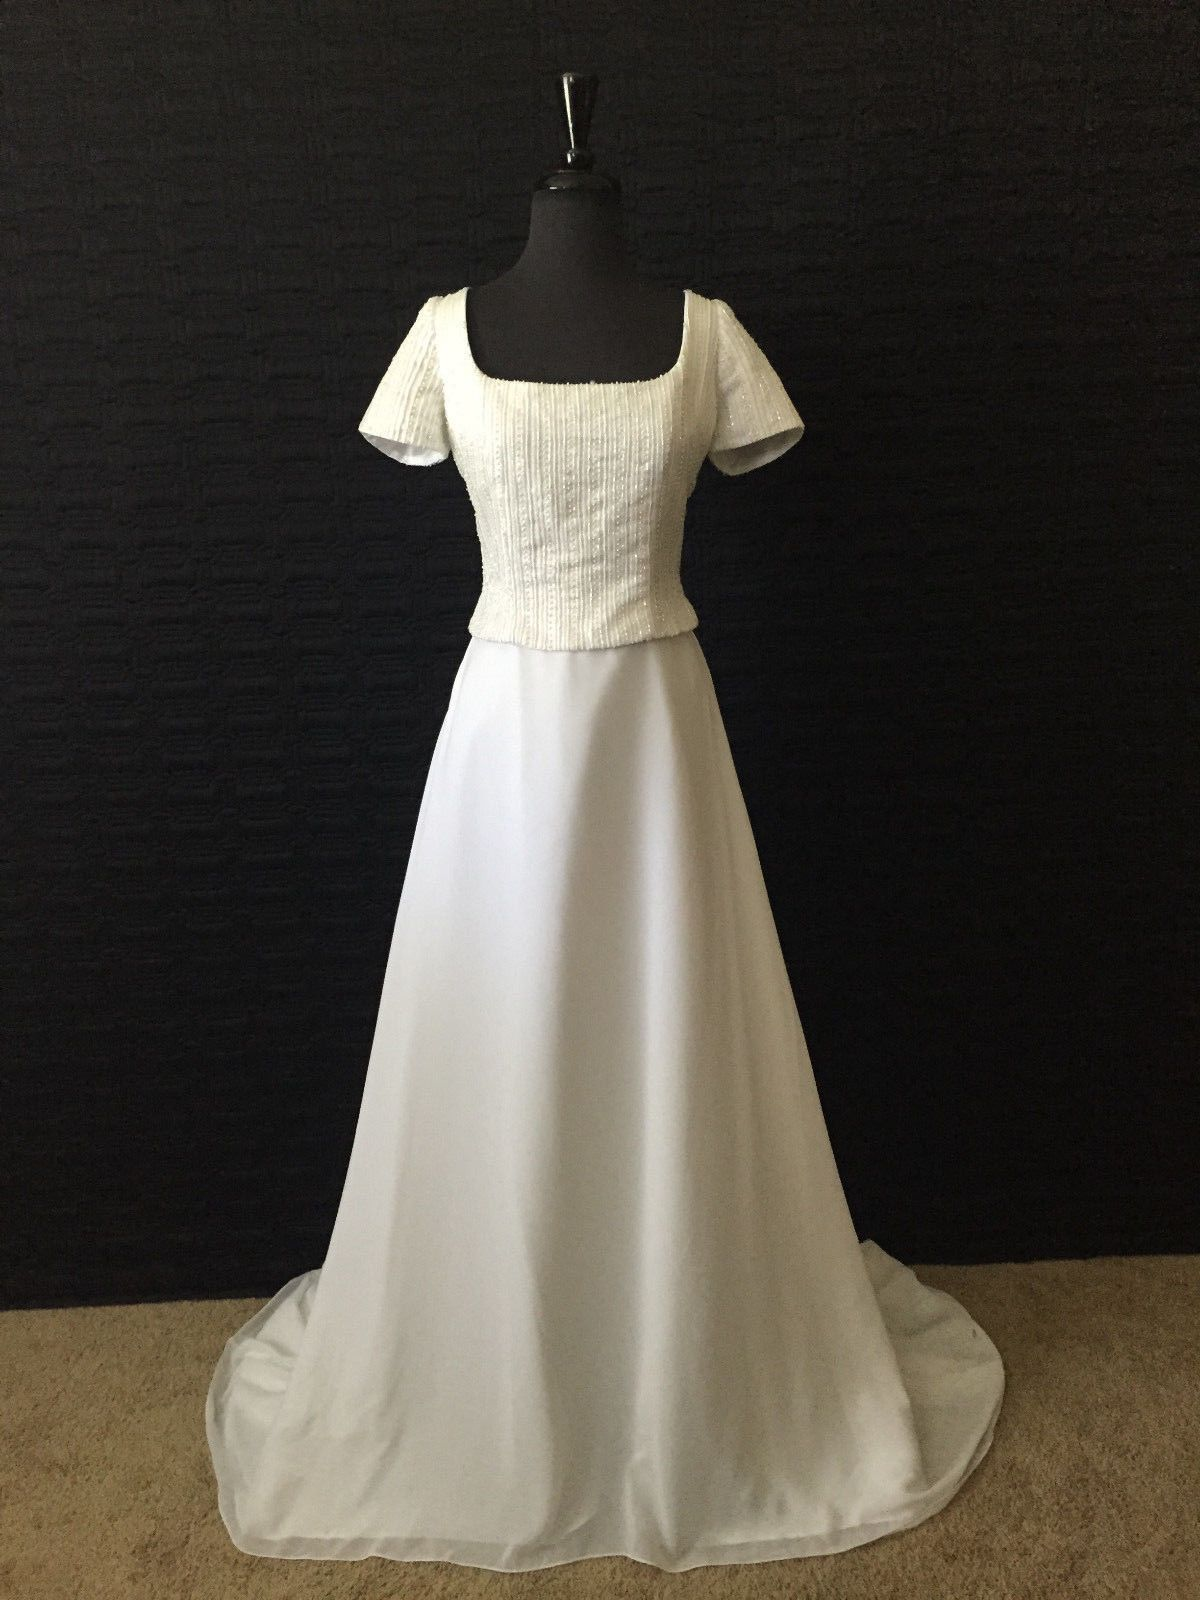 Awesome awesome modest conservative wedding dress white size